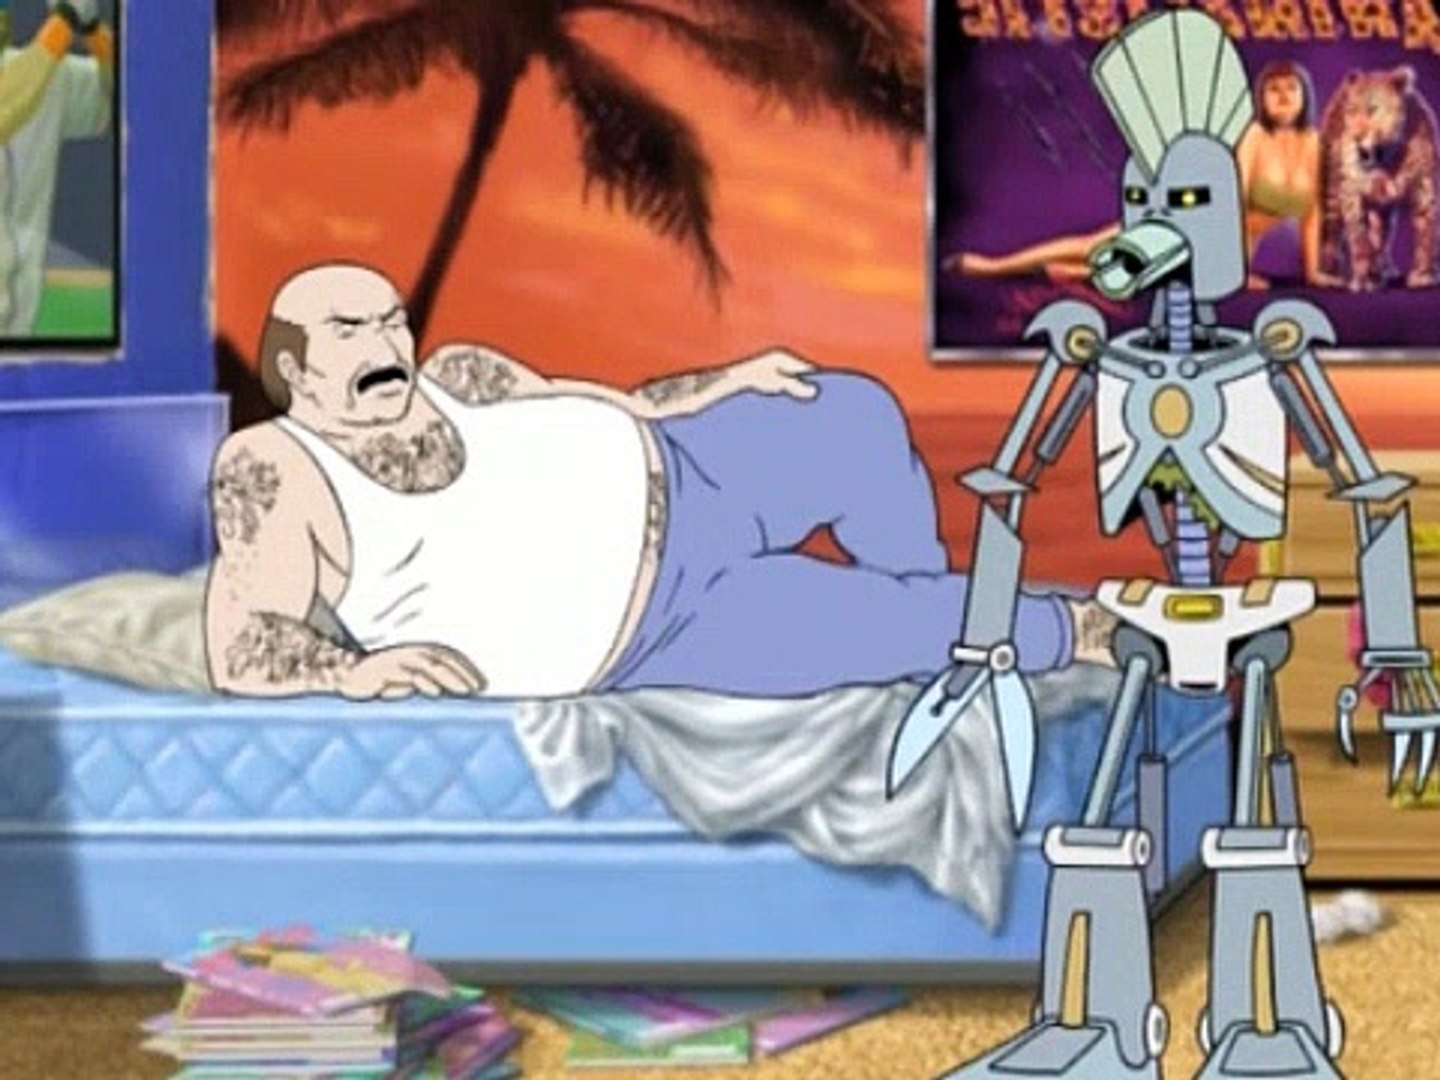 Cybernetic Ghost Of Christmas Past From The Future.Aqua Teen Hunger Force Season 1 Episode 18 Cybernetic Ghost Of Christmas Past From The Future